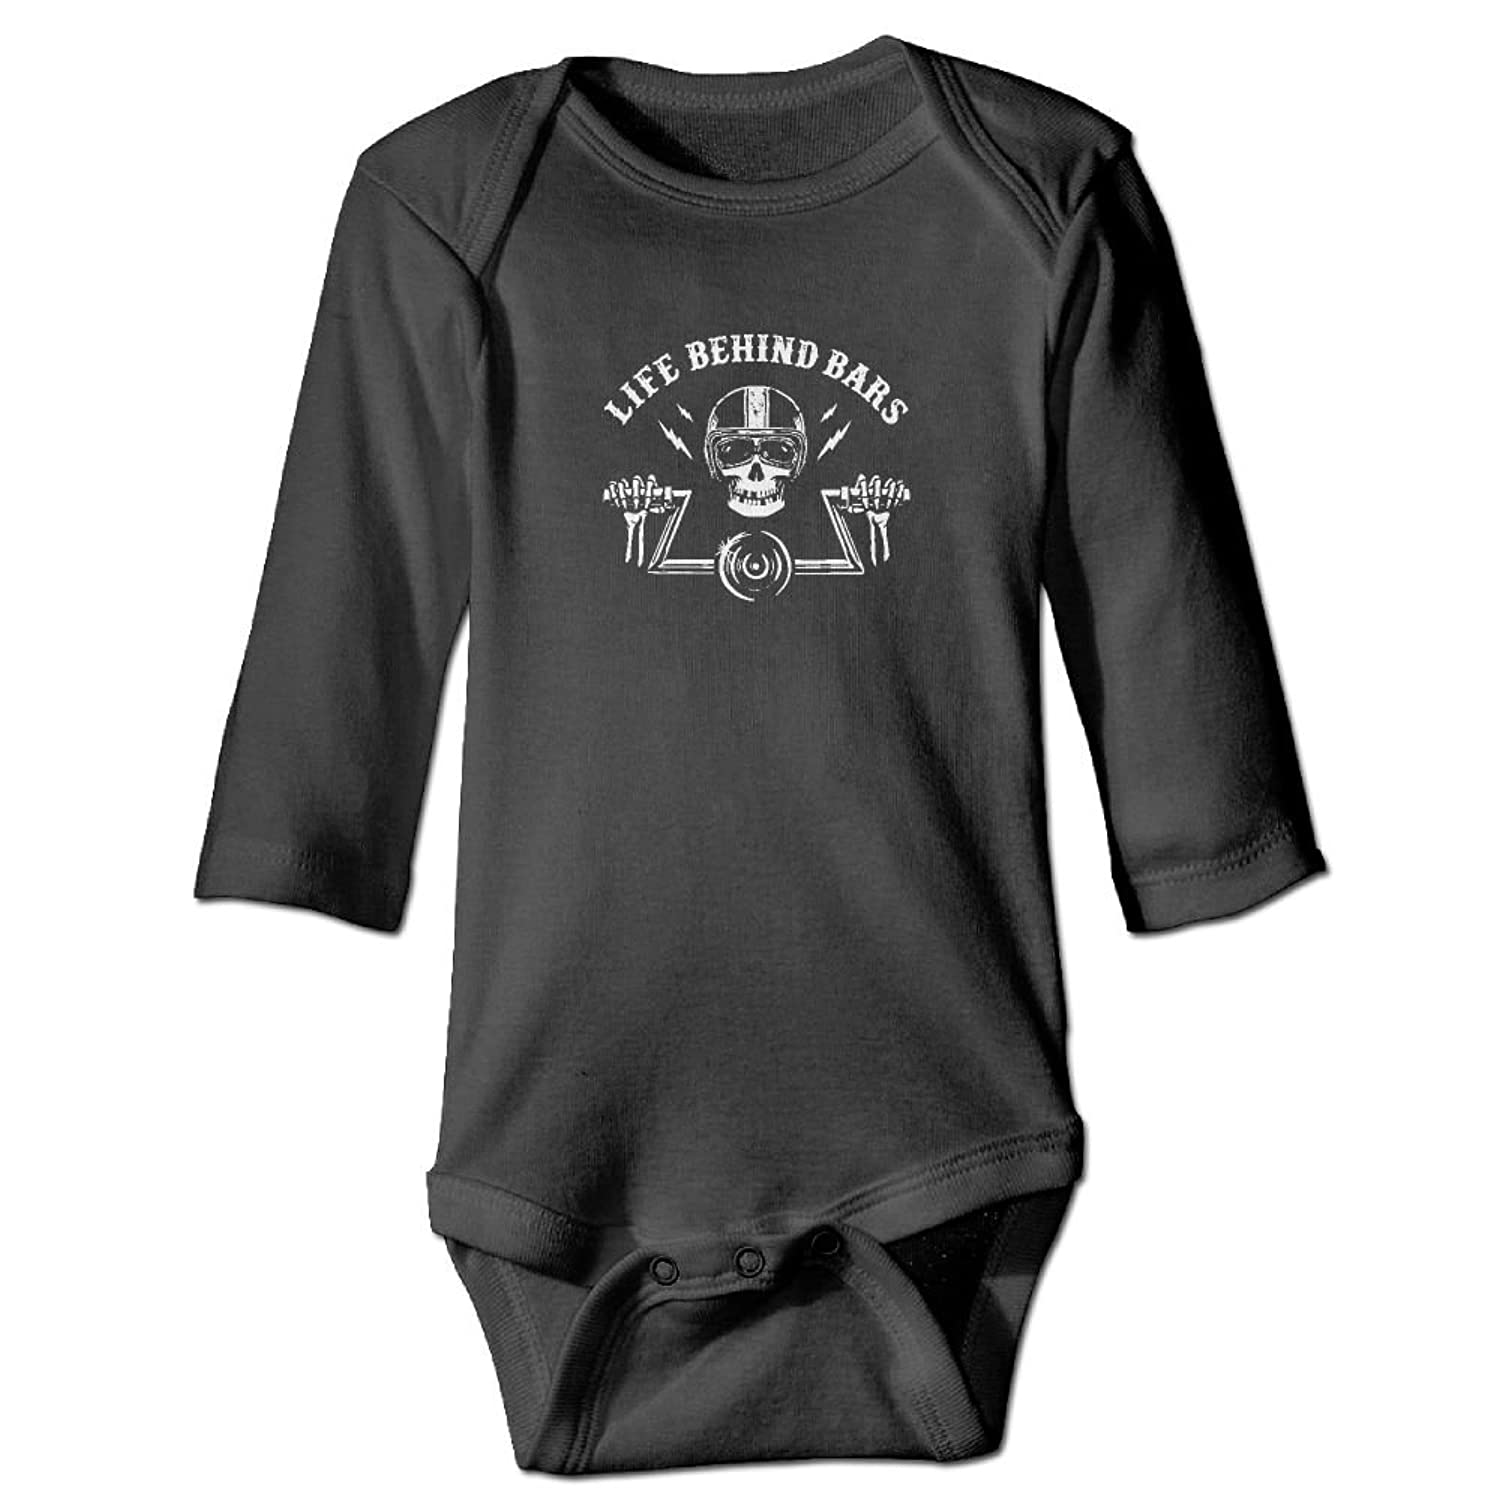 DecorMyGarden Vintage Motorcycle Funny Printed Romper Clothes For Newborns 0 24 Months